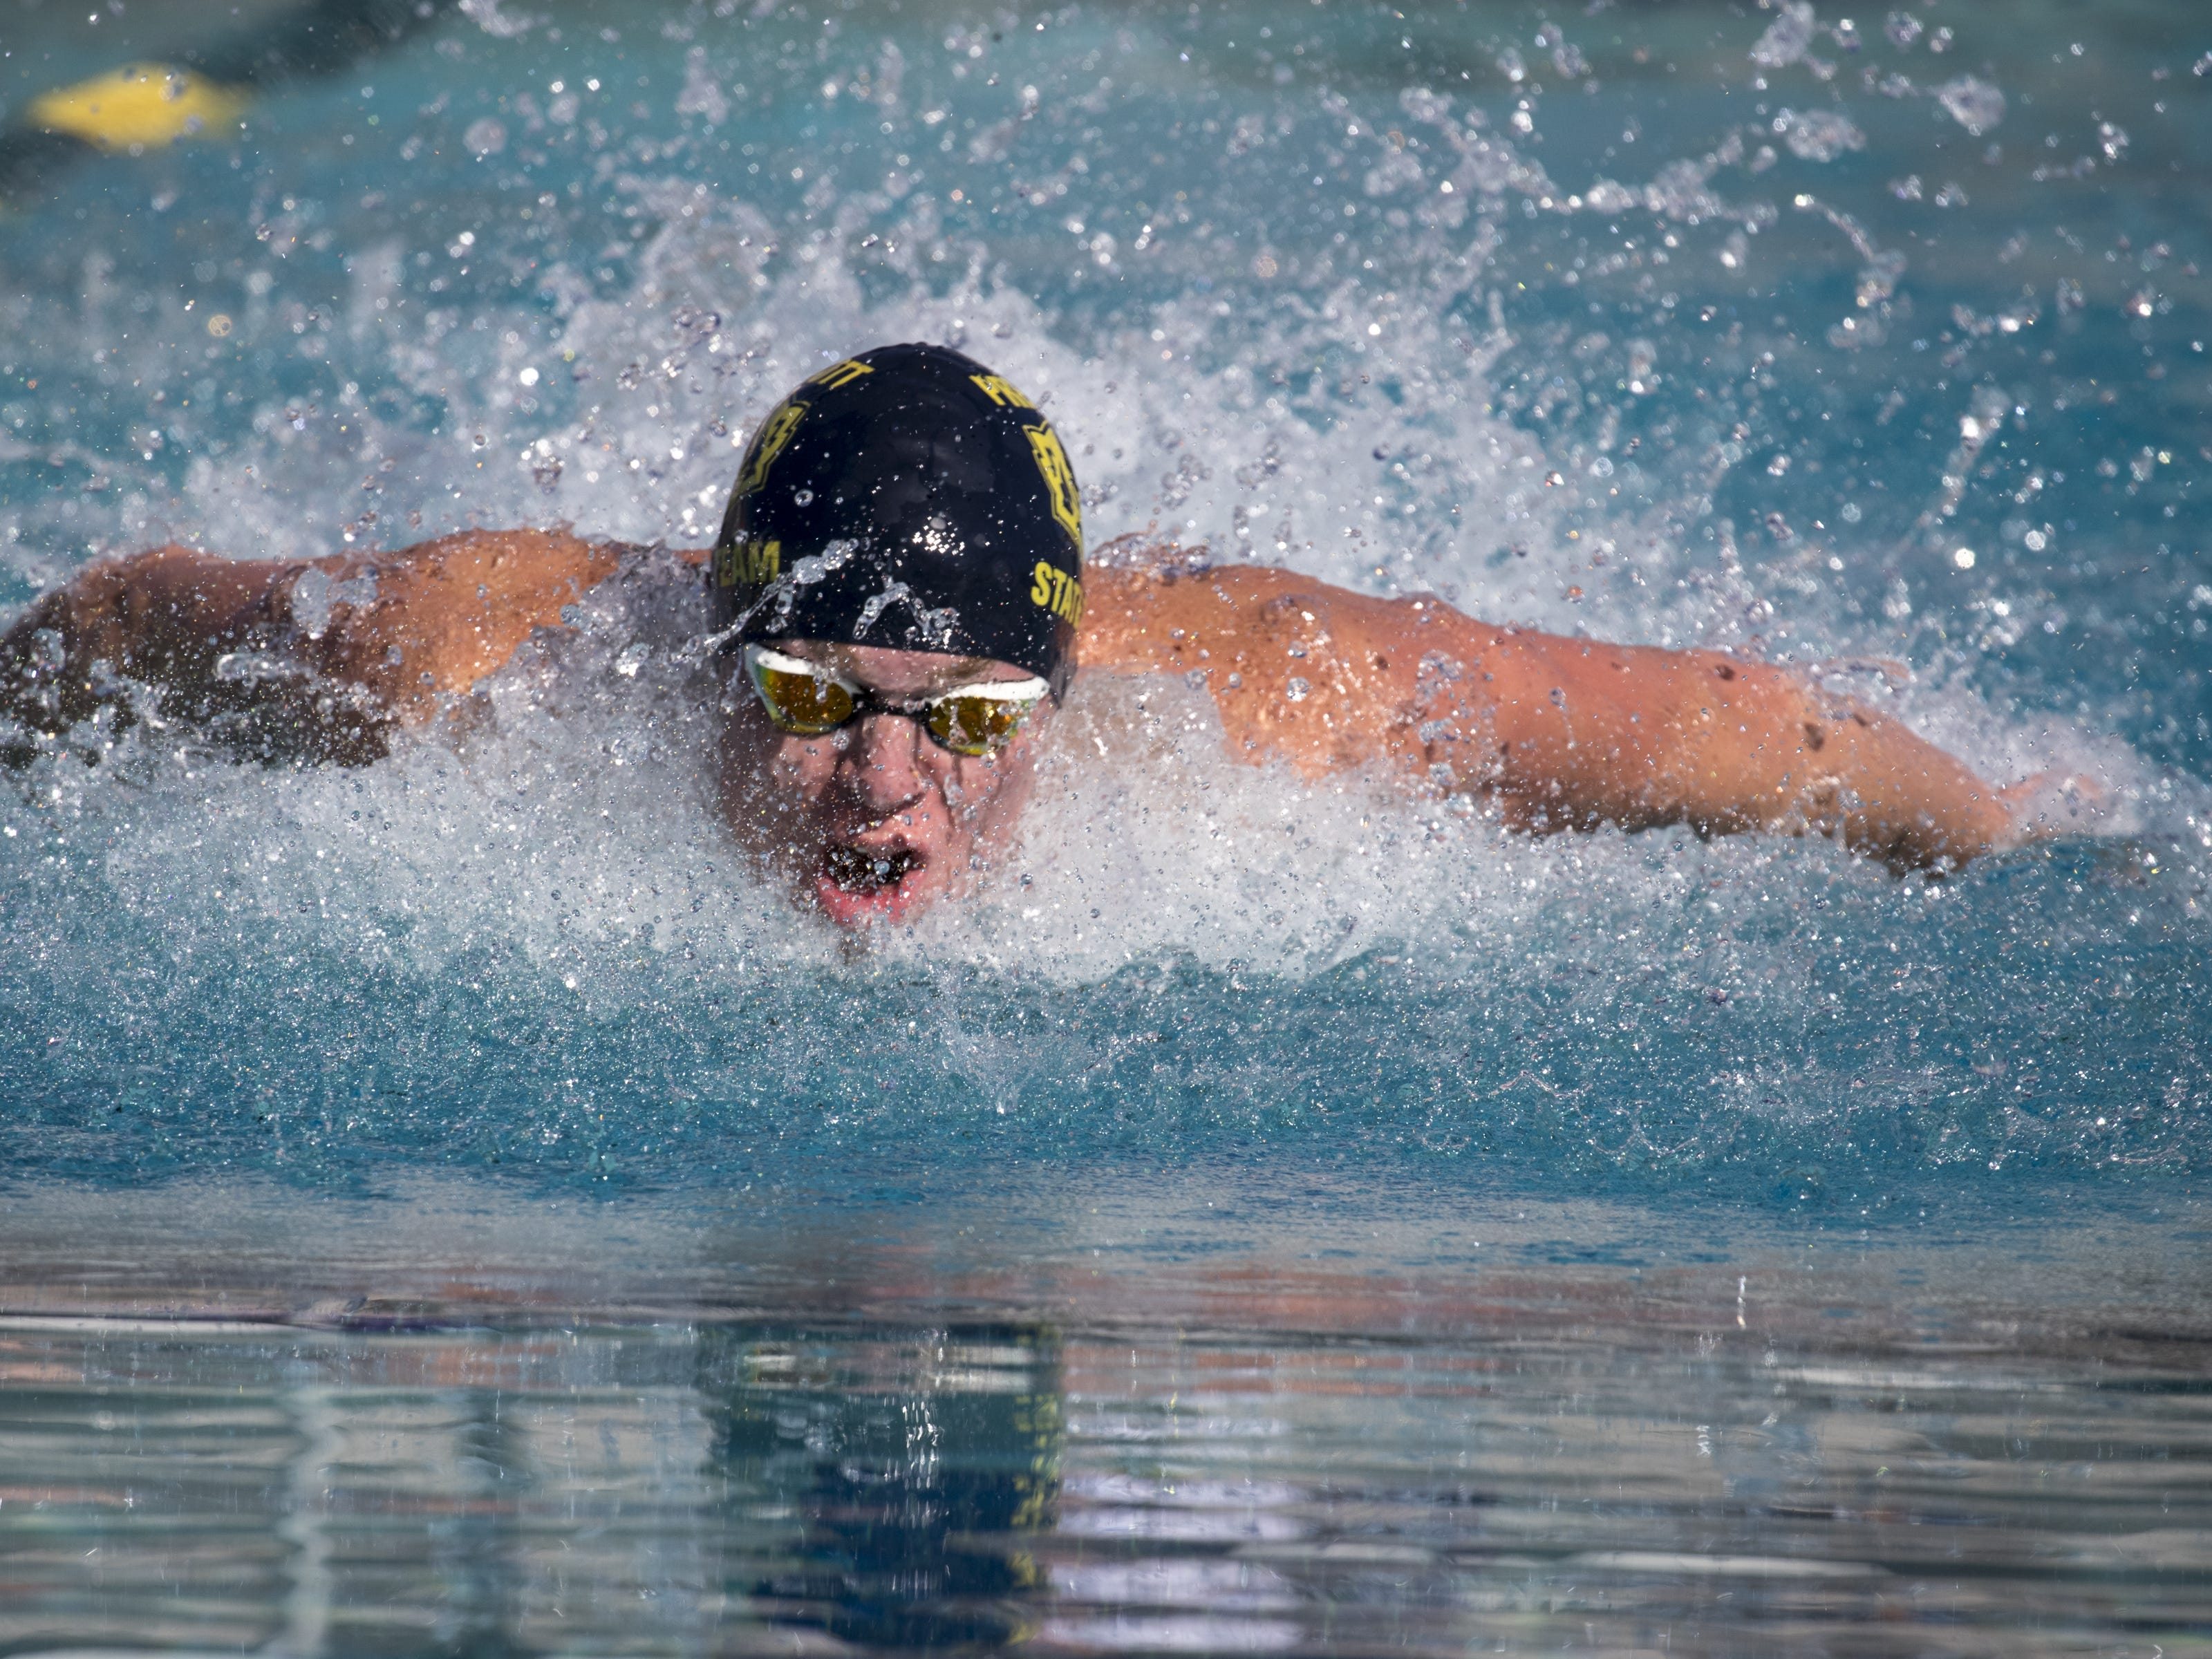 Harris Temple (Prescott) swims the 100 Butterfly, November 3, 2018, during the AIA Division II state swimming finals at the Skyline Aquatic Center, Mesa. Temple finished second.